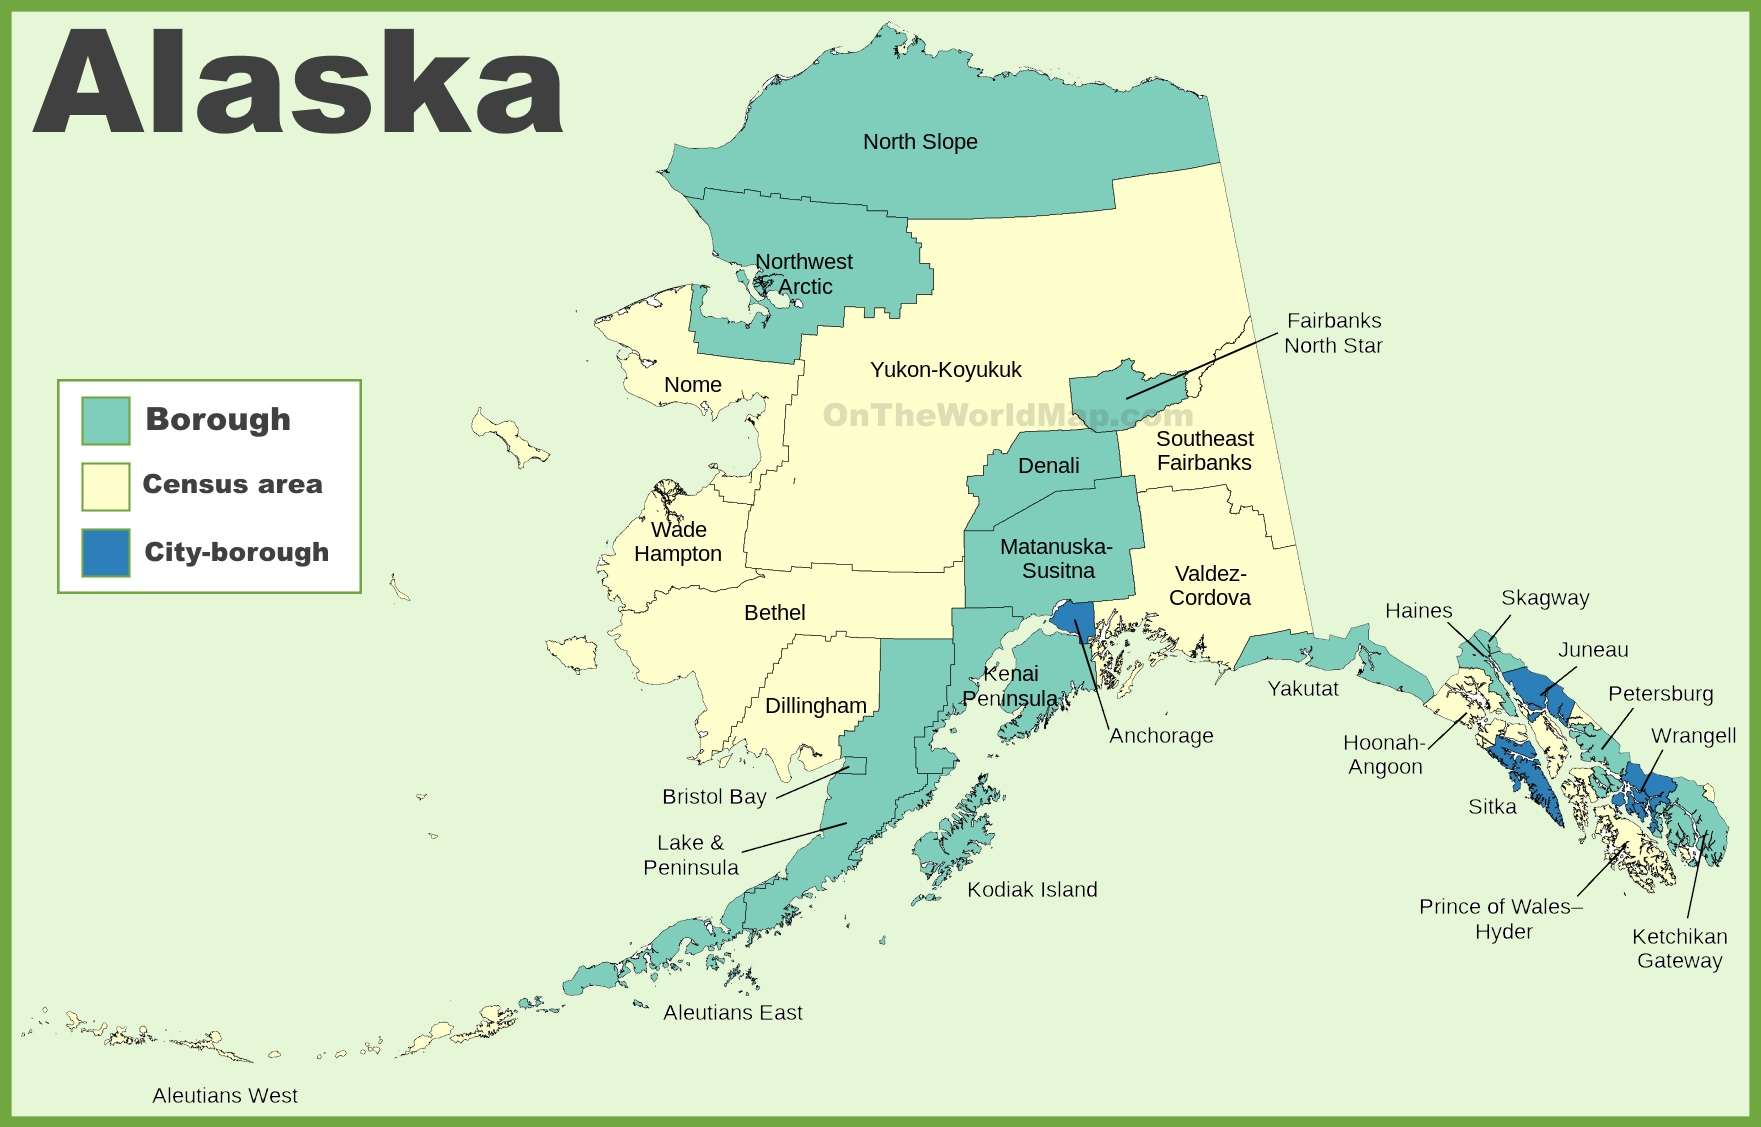 Alaska State Maps USA Maps Of Alaska AK - Alaska maps